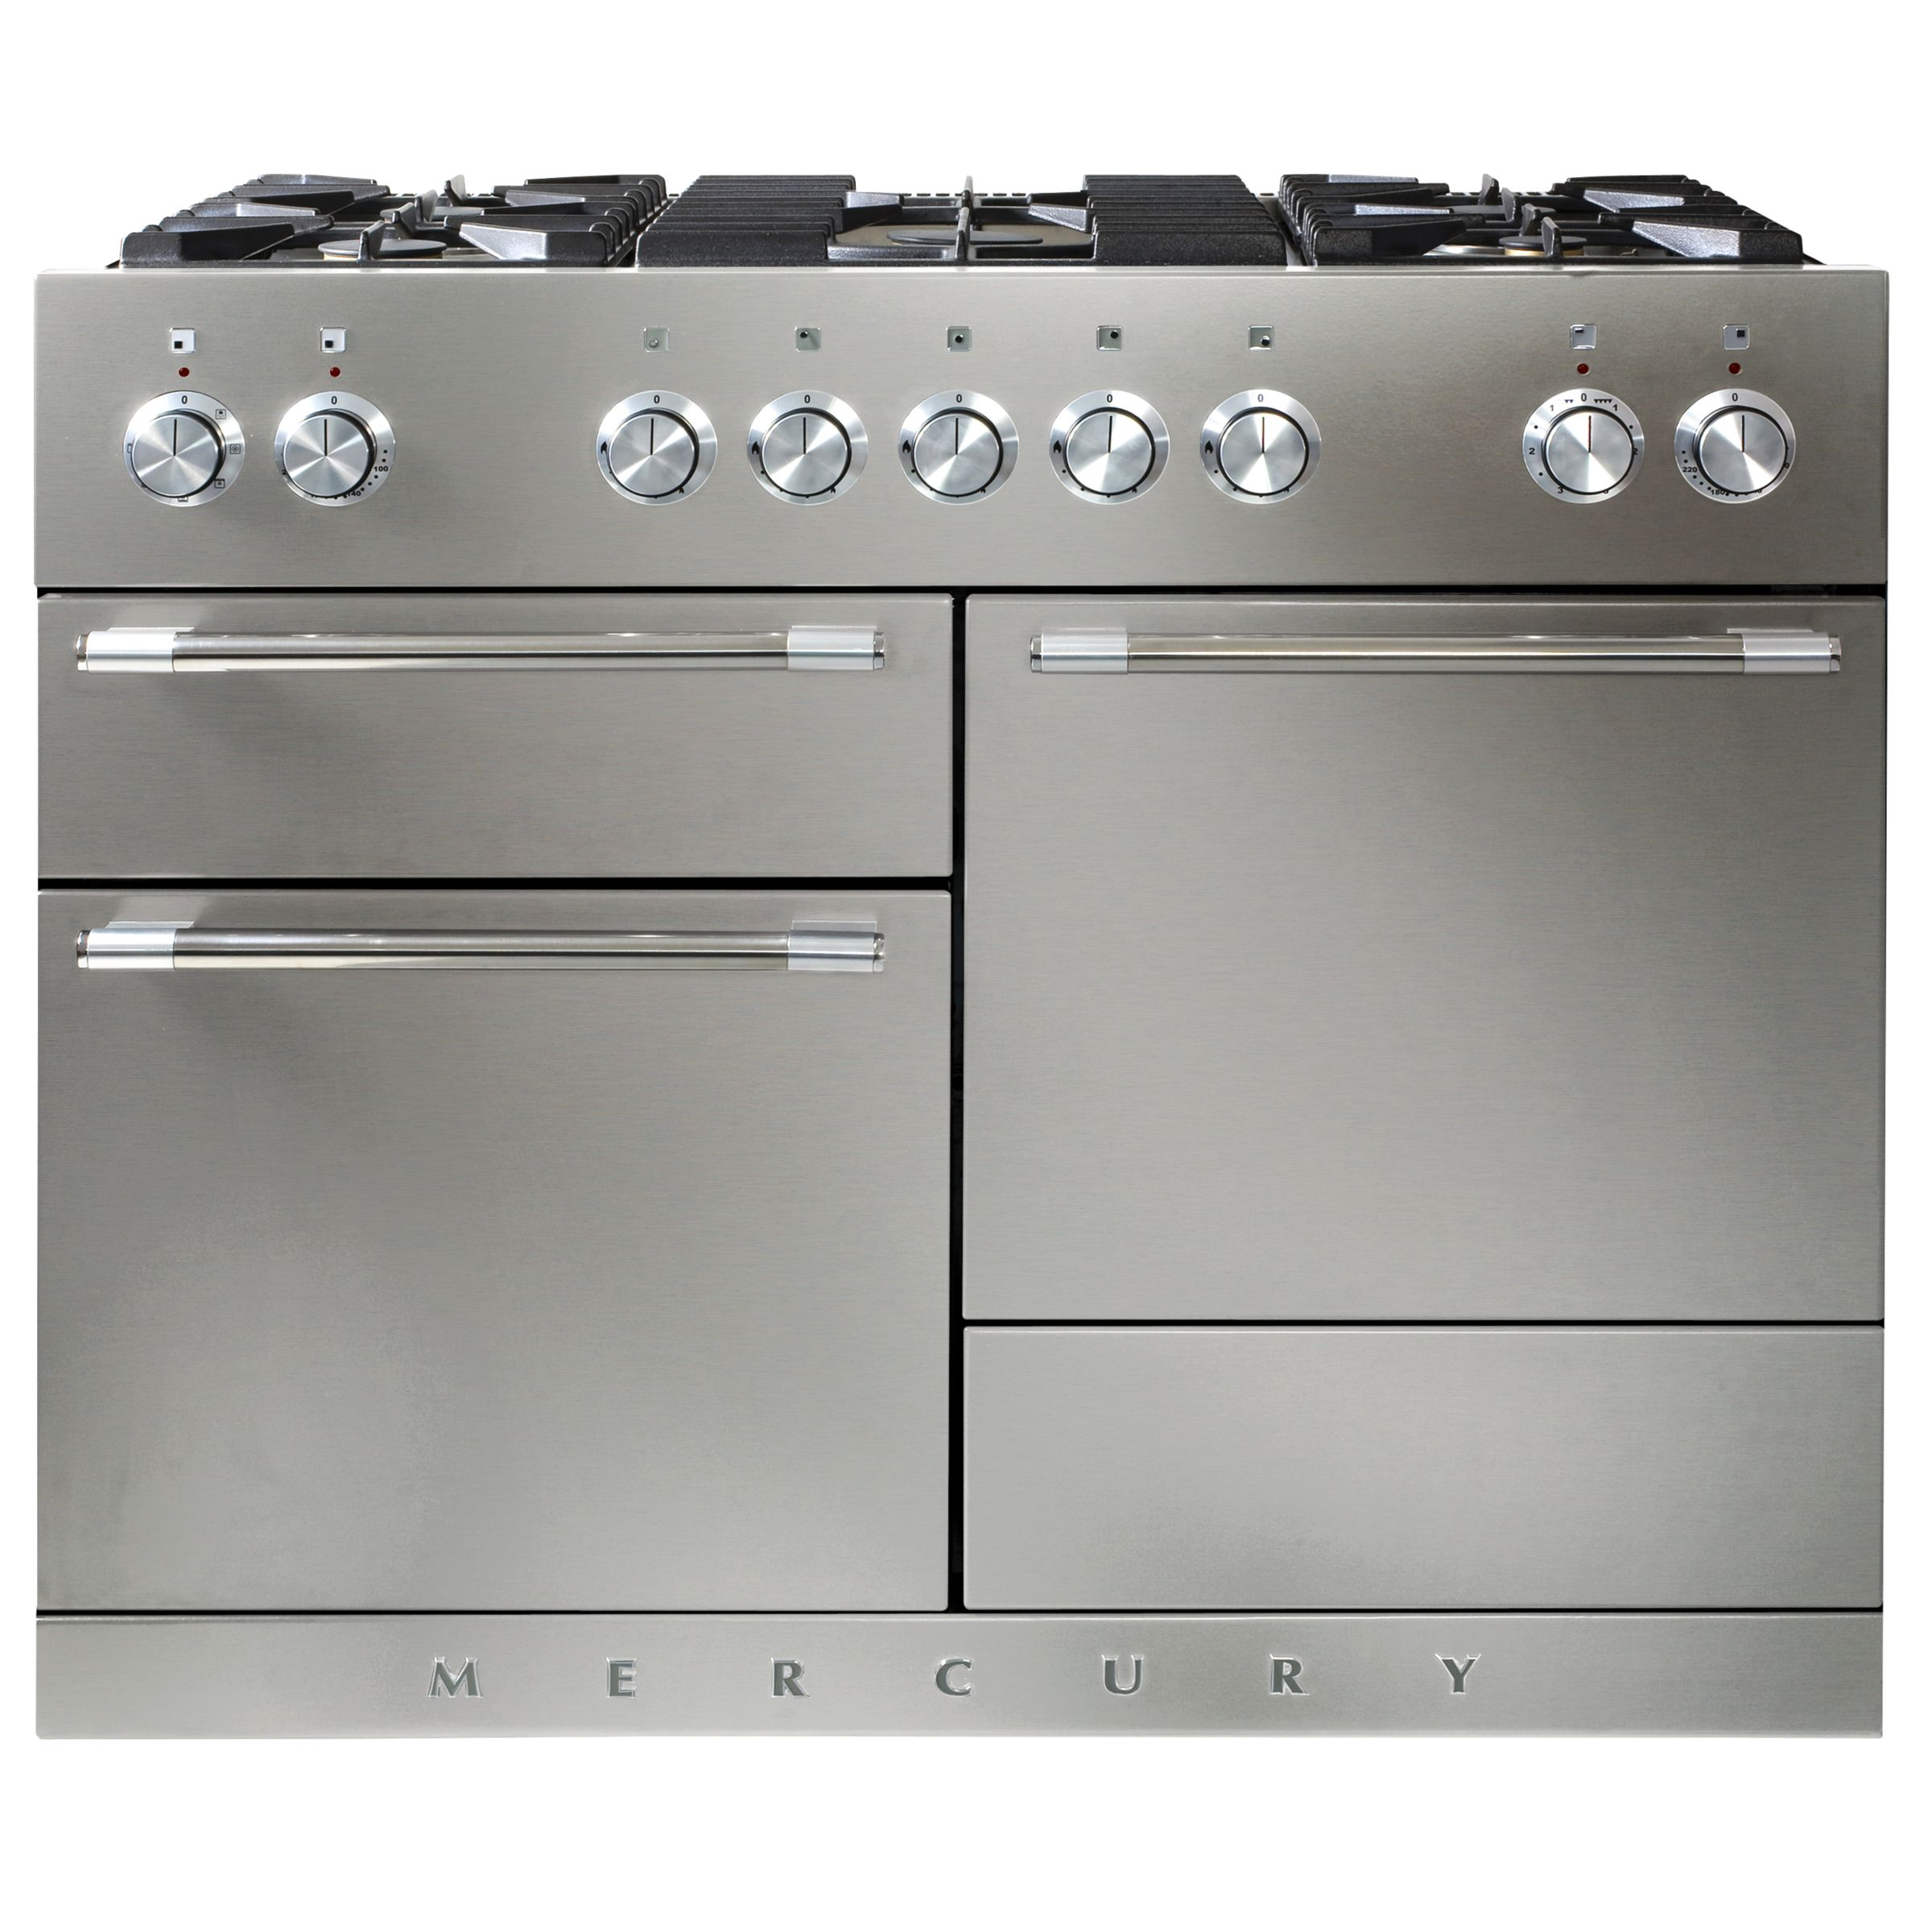 Mercury MCY1100DFSS Dual Fuel Cooker, Stainless Steel at John Lewis